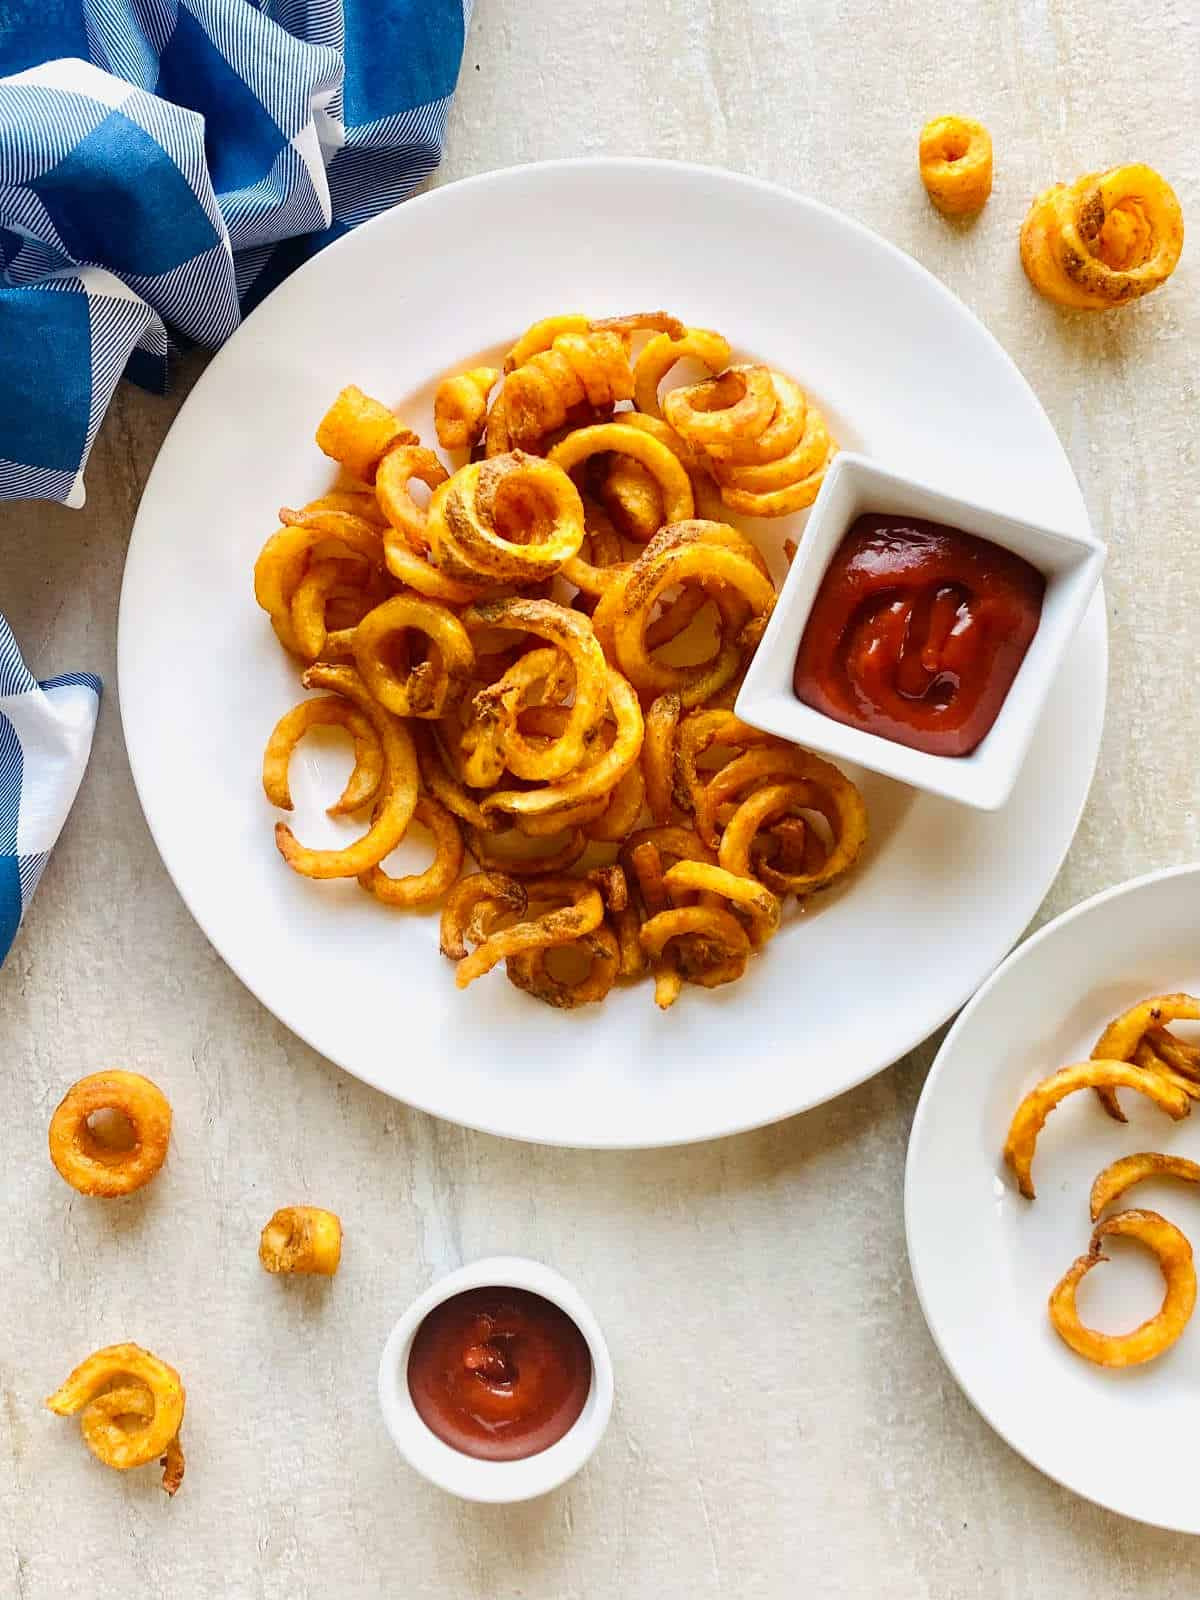 air fryer curly fries on plate with ketchup